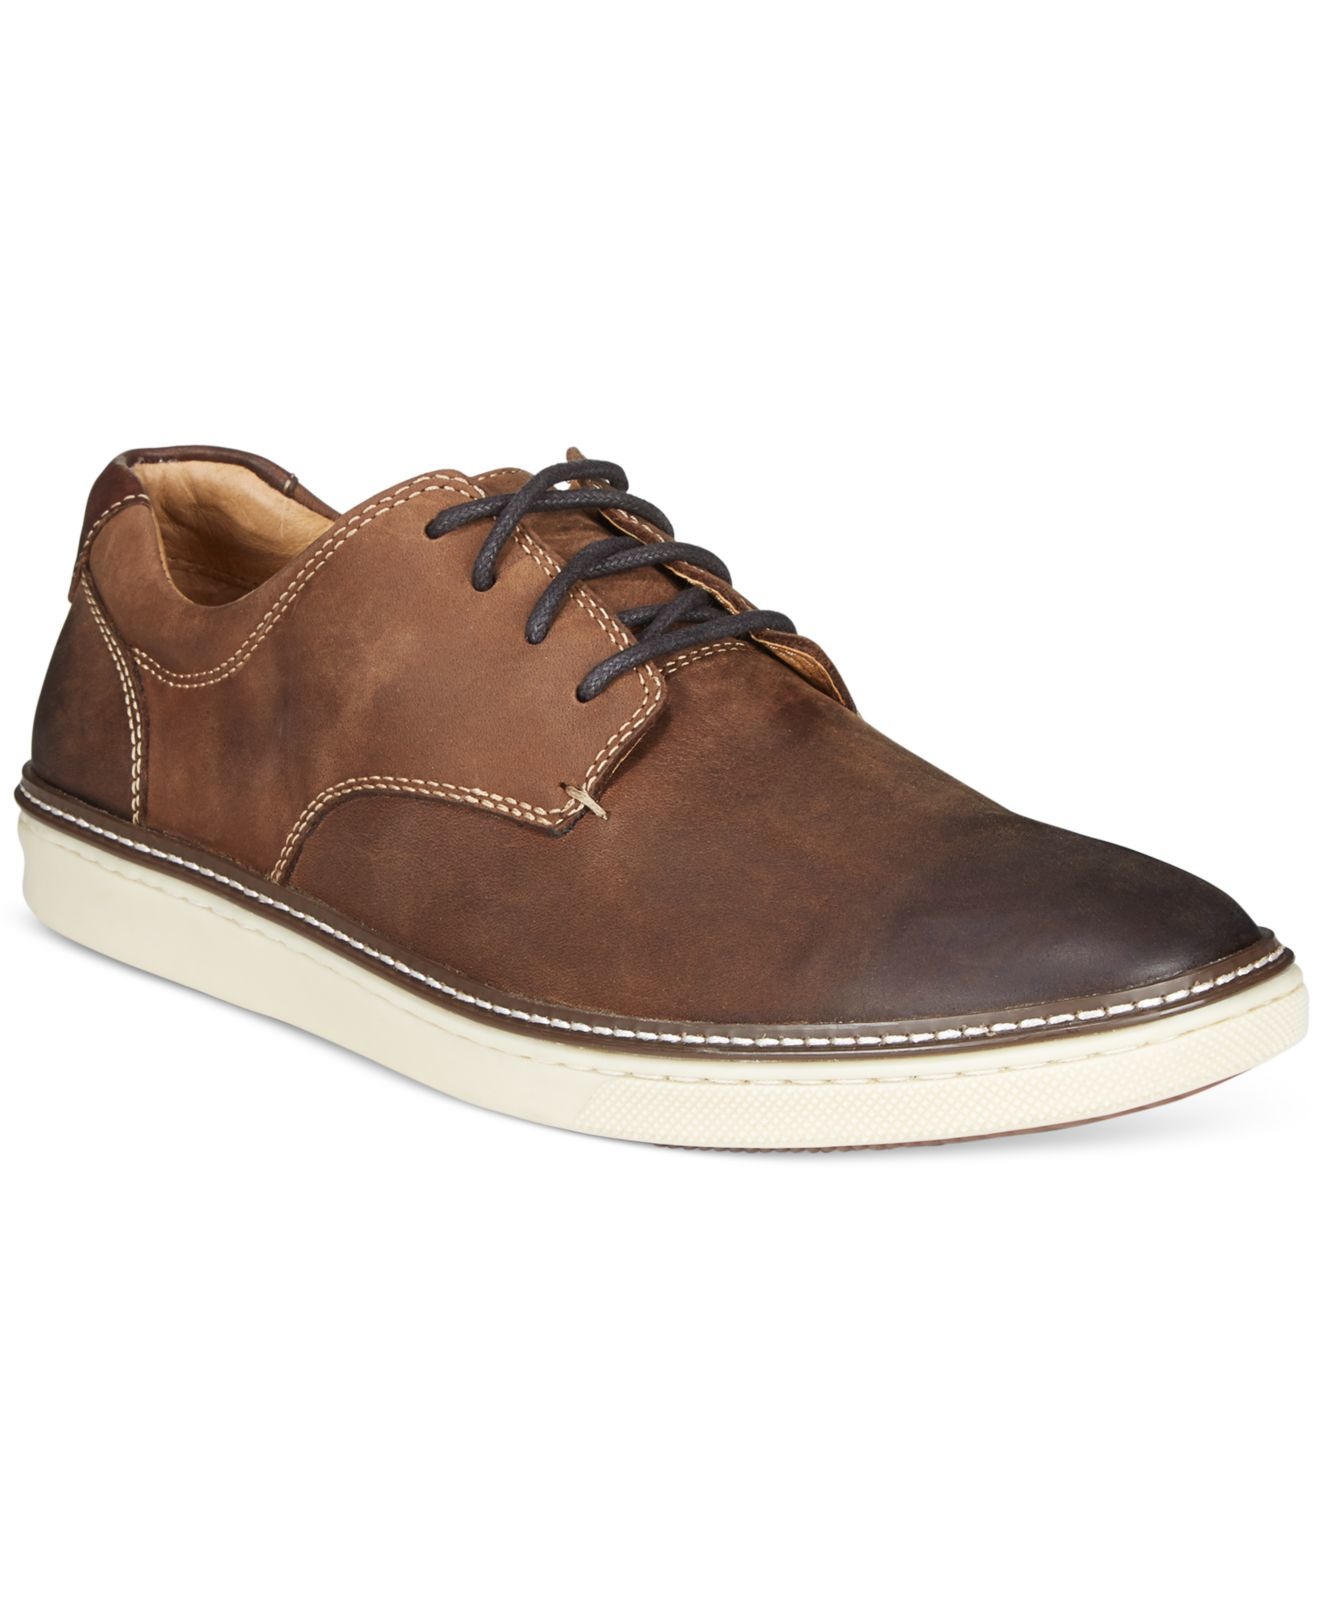 Mcguffey Plain Toe Lace Up Shoes